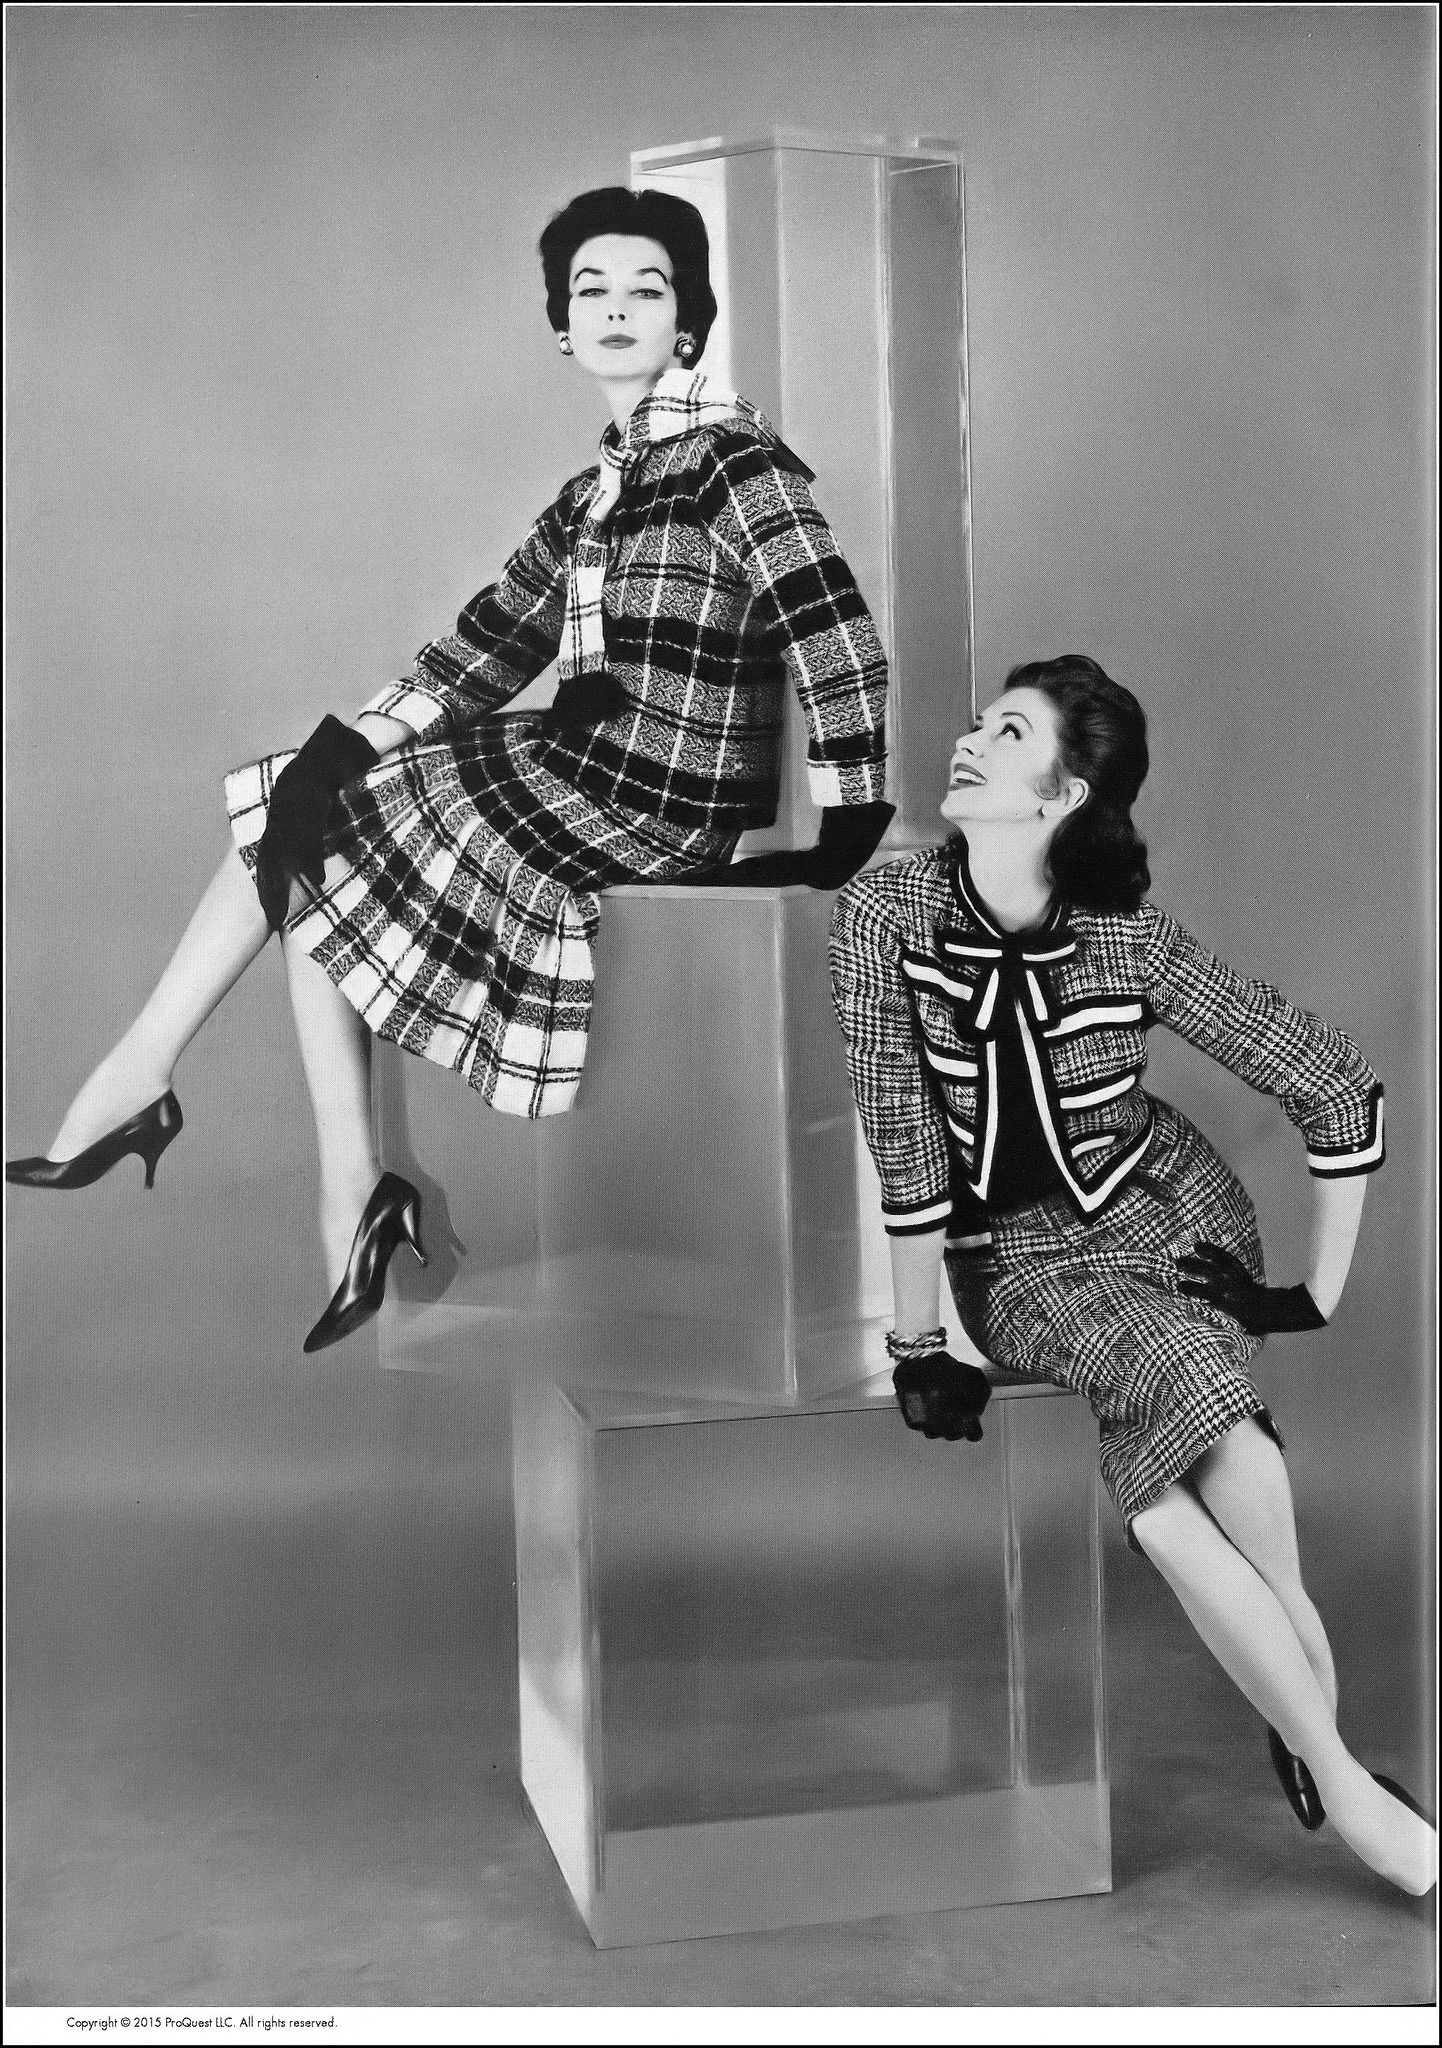 Dorian Leigh (top) in black and white plaid tweed suit with lower length of f1d4af3fe10